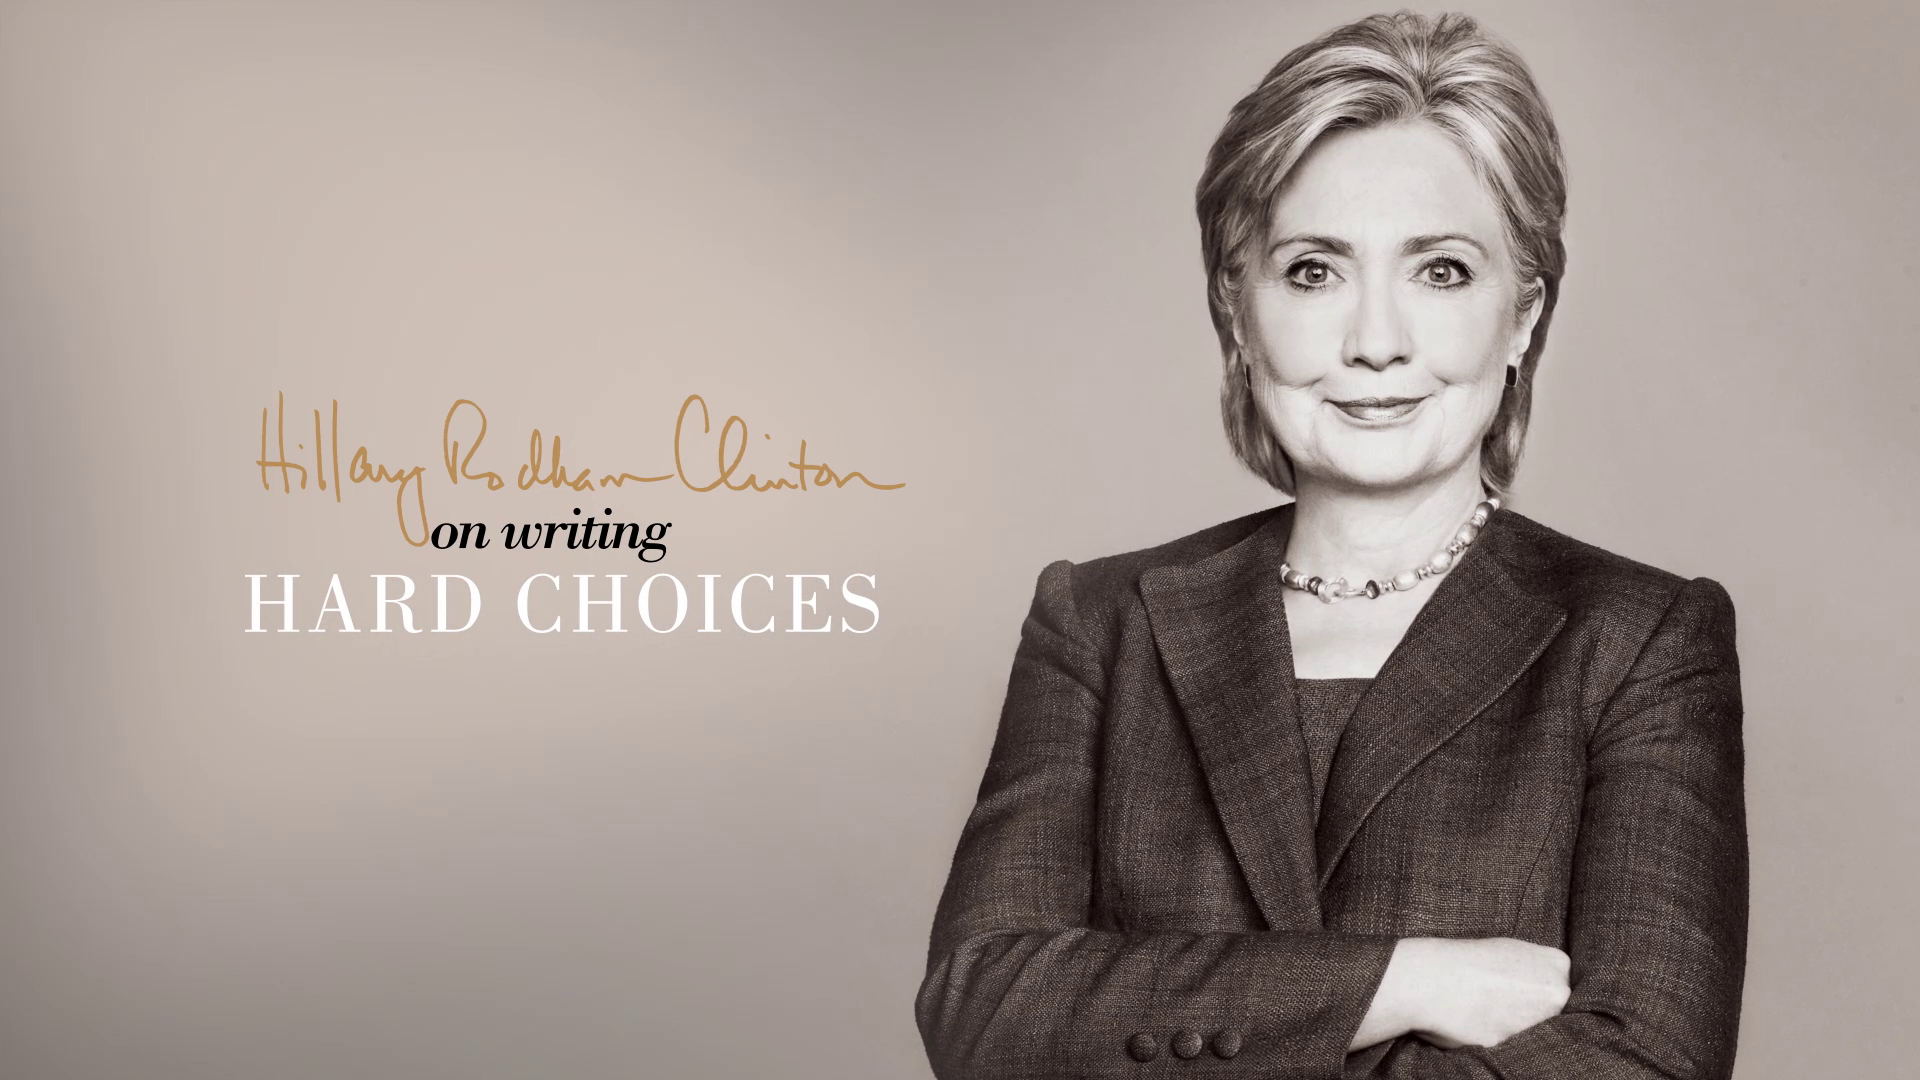 Hillary Clinton on Writing Hard Choices